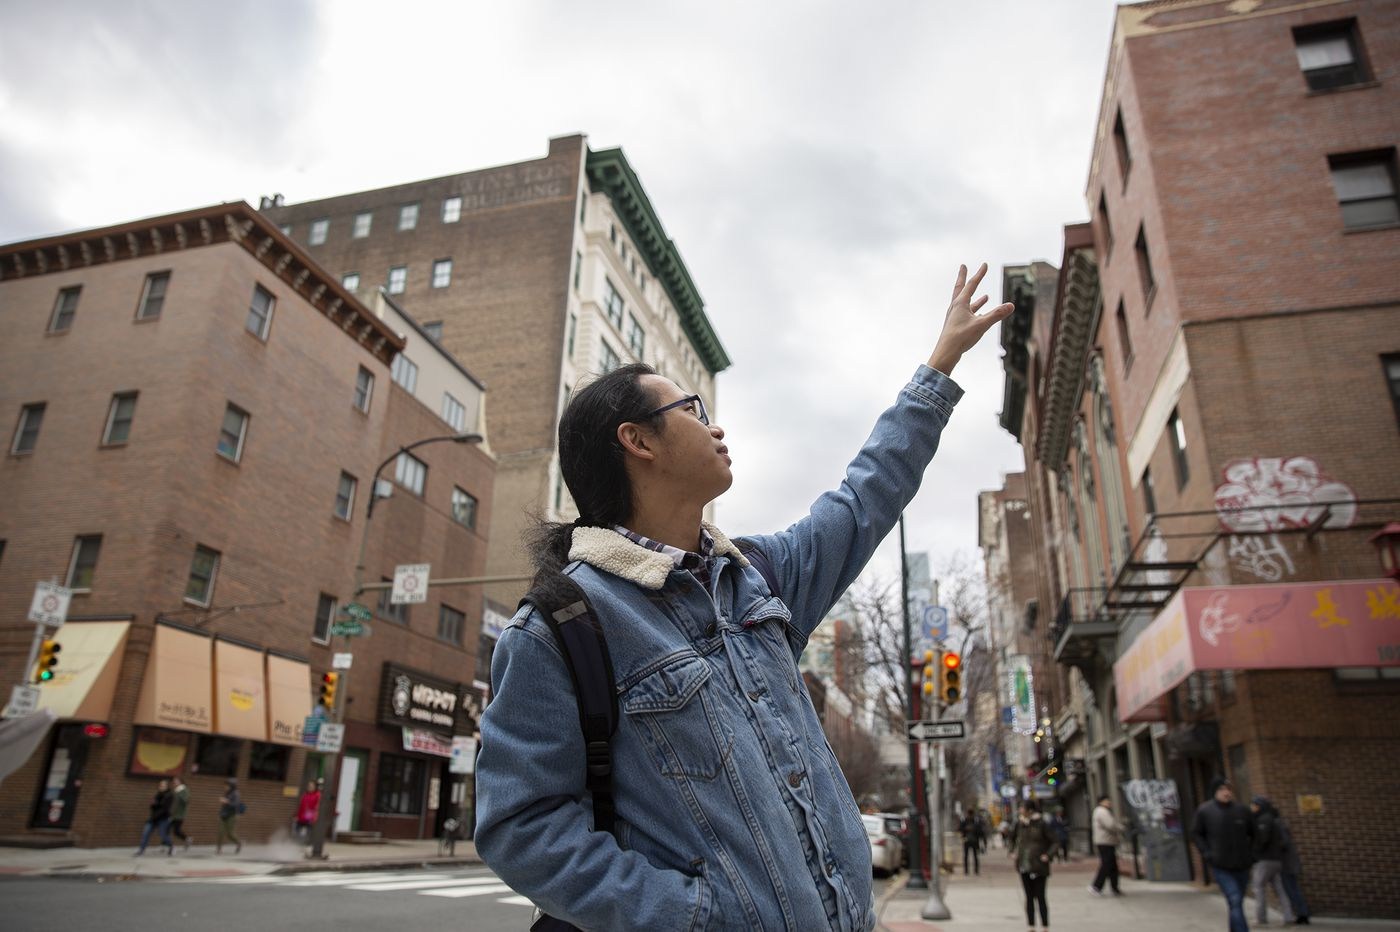 He painted murals in Beijing. Now, he dreams of painting Chinatown.